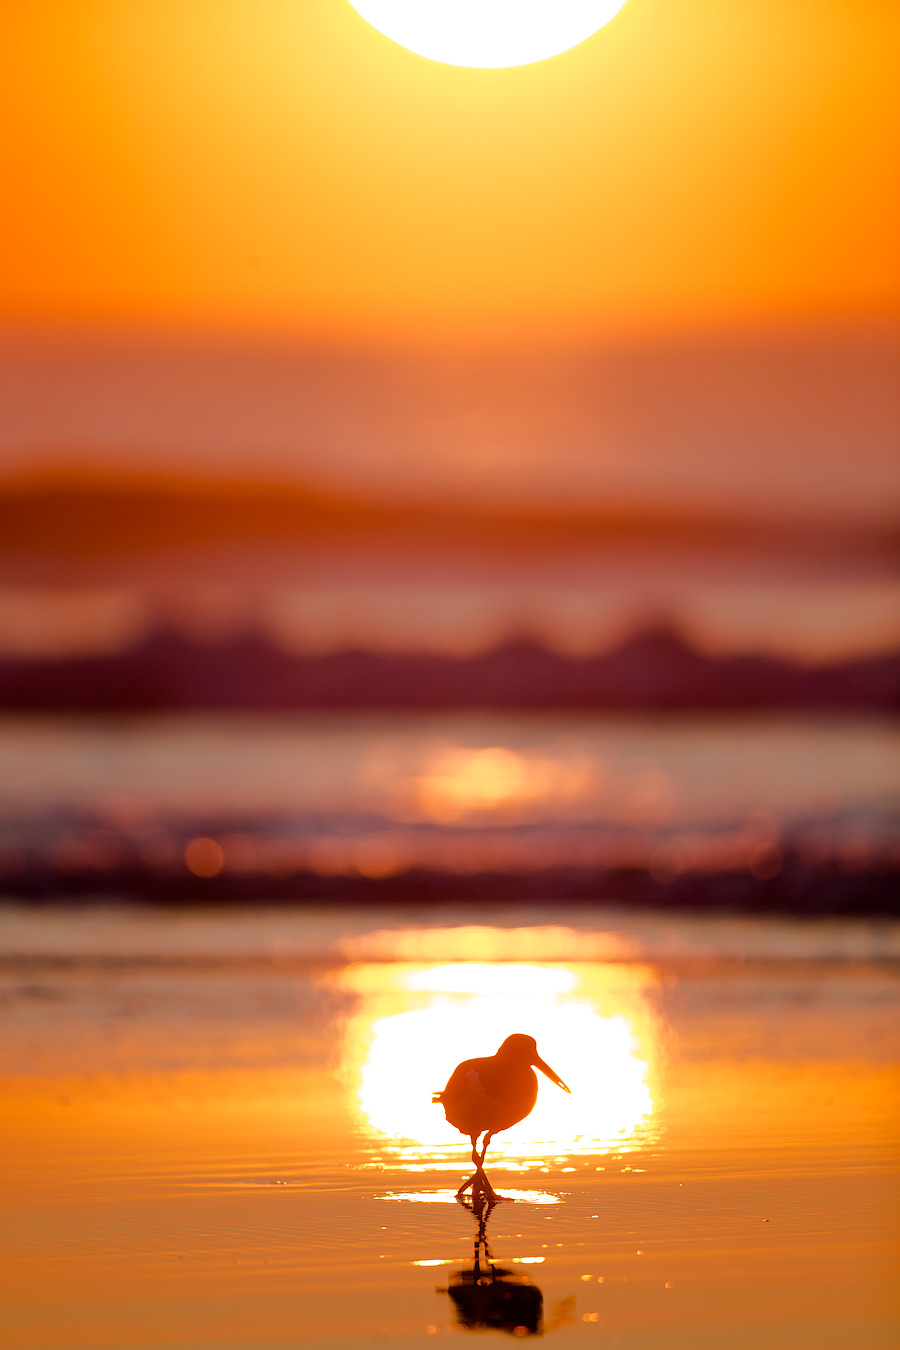 When Low Tide intersects the Sunrise, the forecast is great for spotting American Oystercatcher on the beach